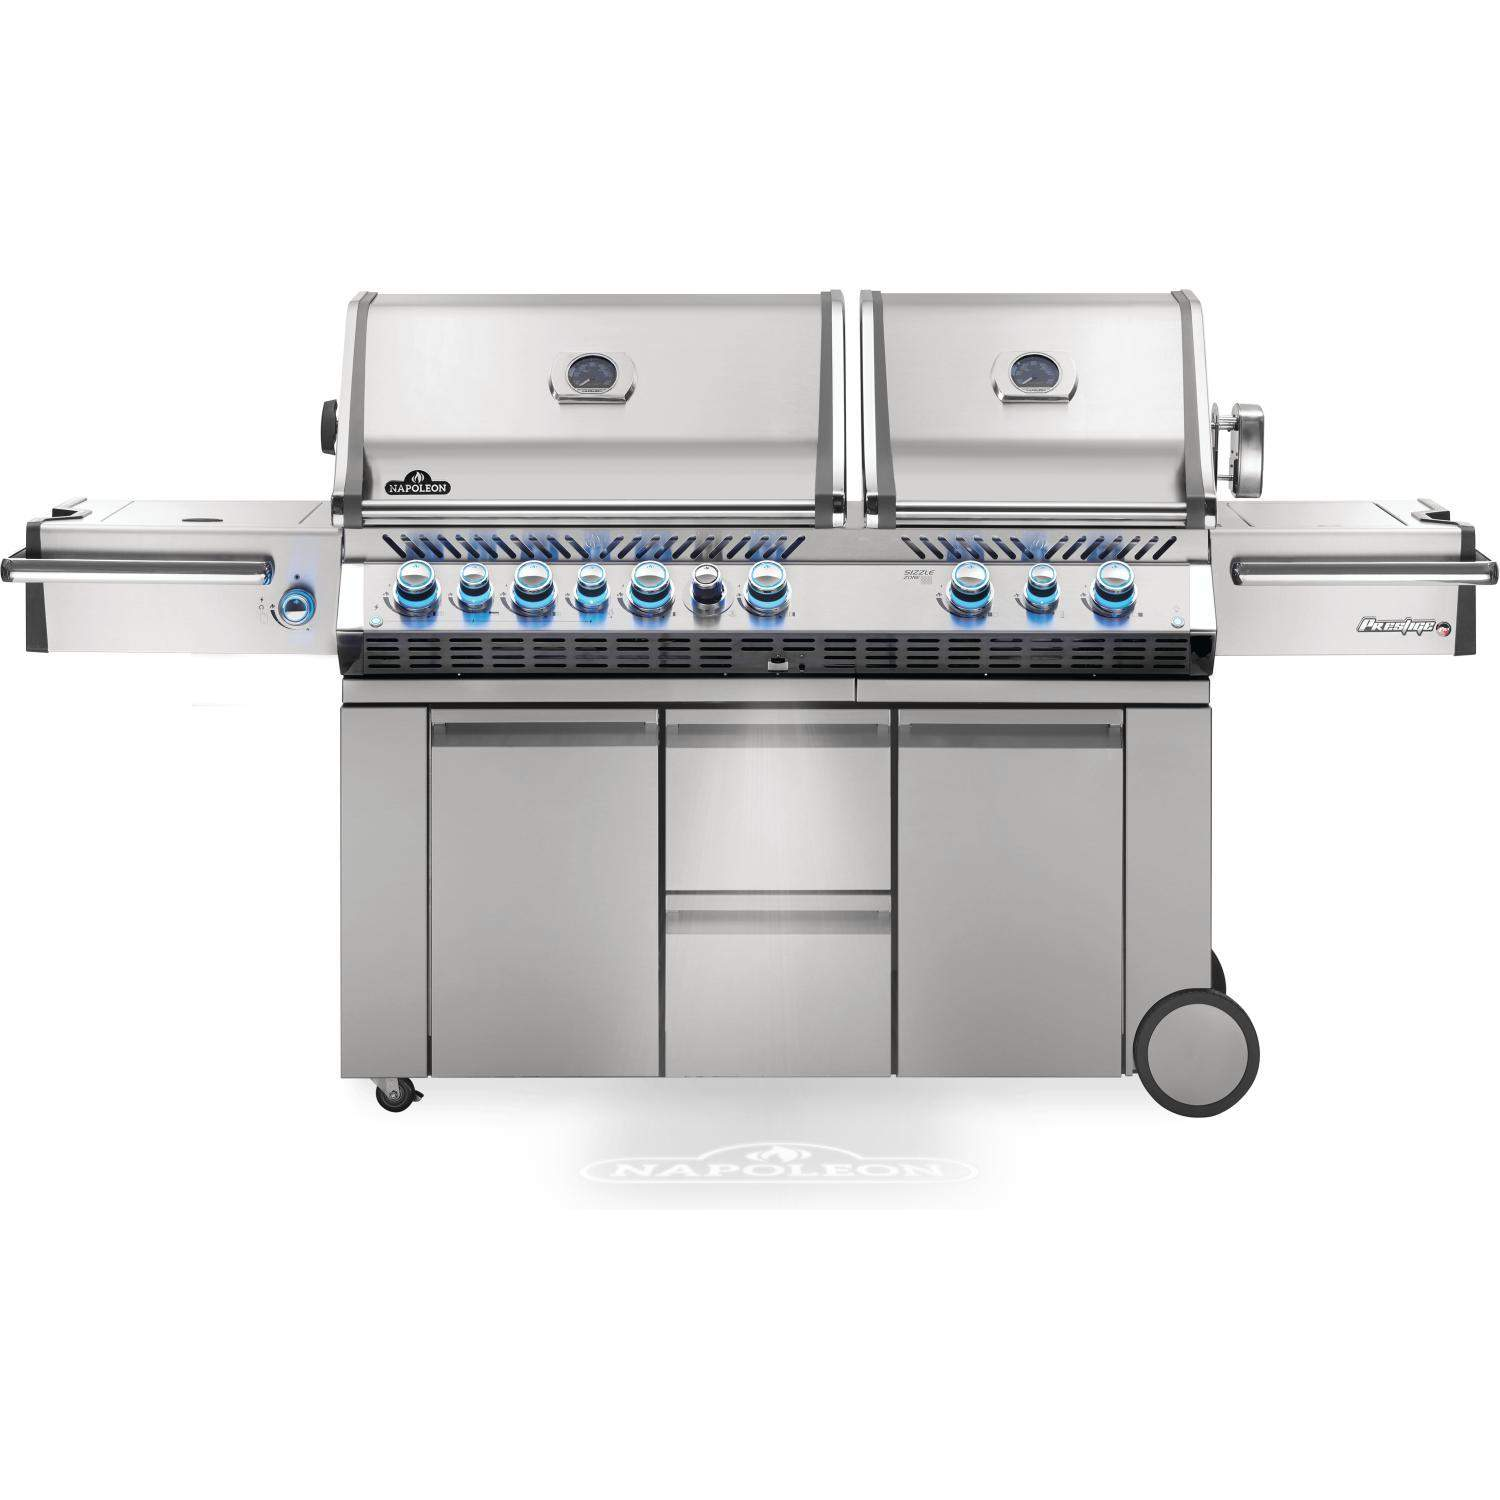 Napoleon Prestige Pro 825 Natural Gas Grill With Infrared Rear Burner Double Infrared Sear Burner Side Burner Pro825rsbinss 3 2019 Propane Gas Grill Grilling Best Gas Grills